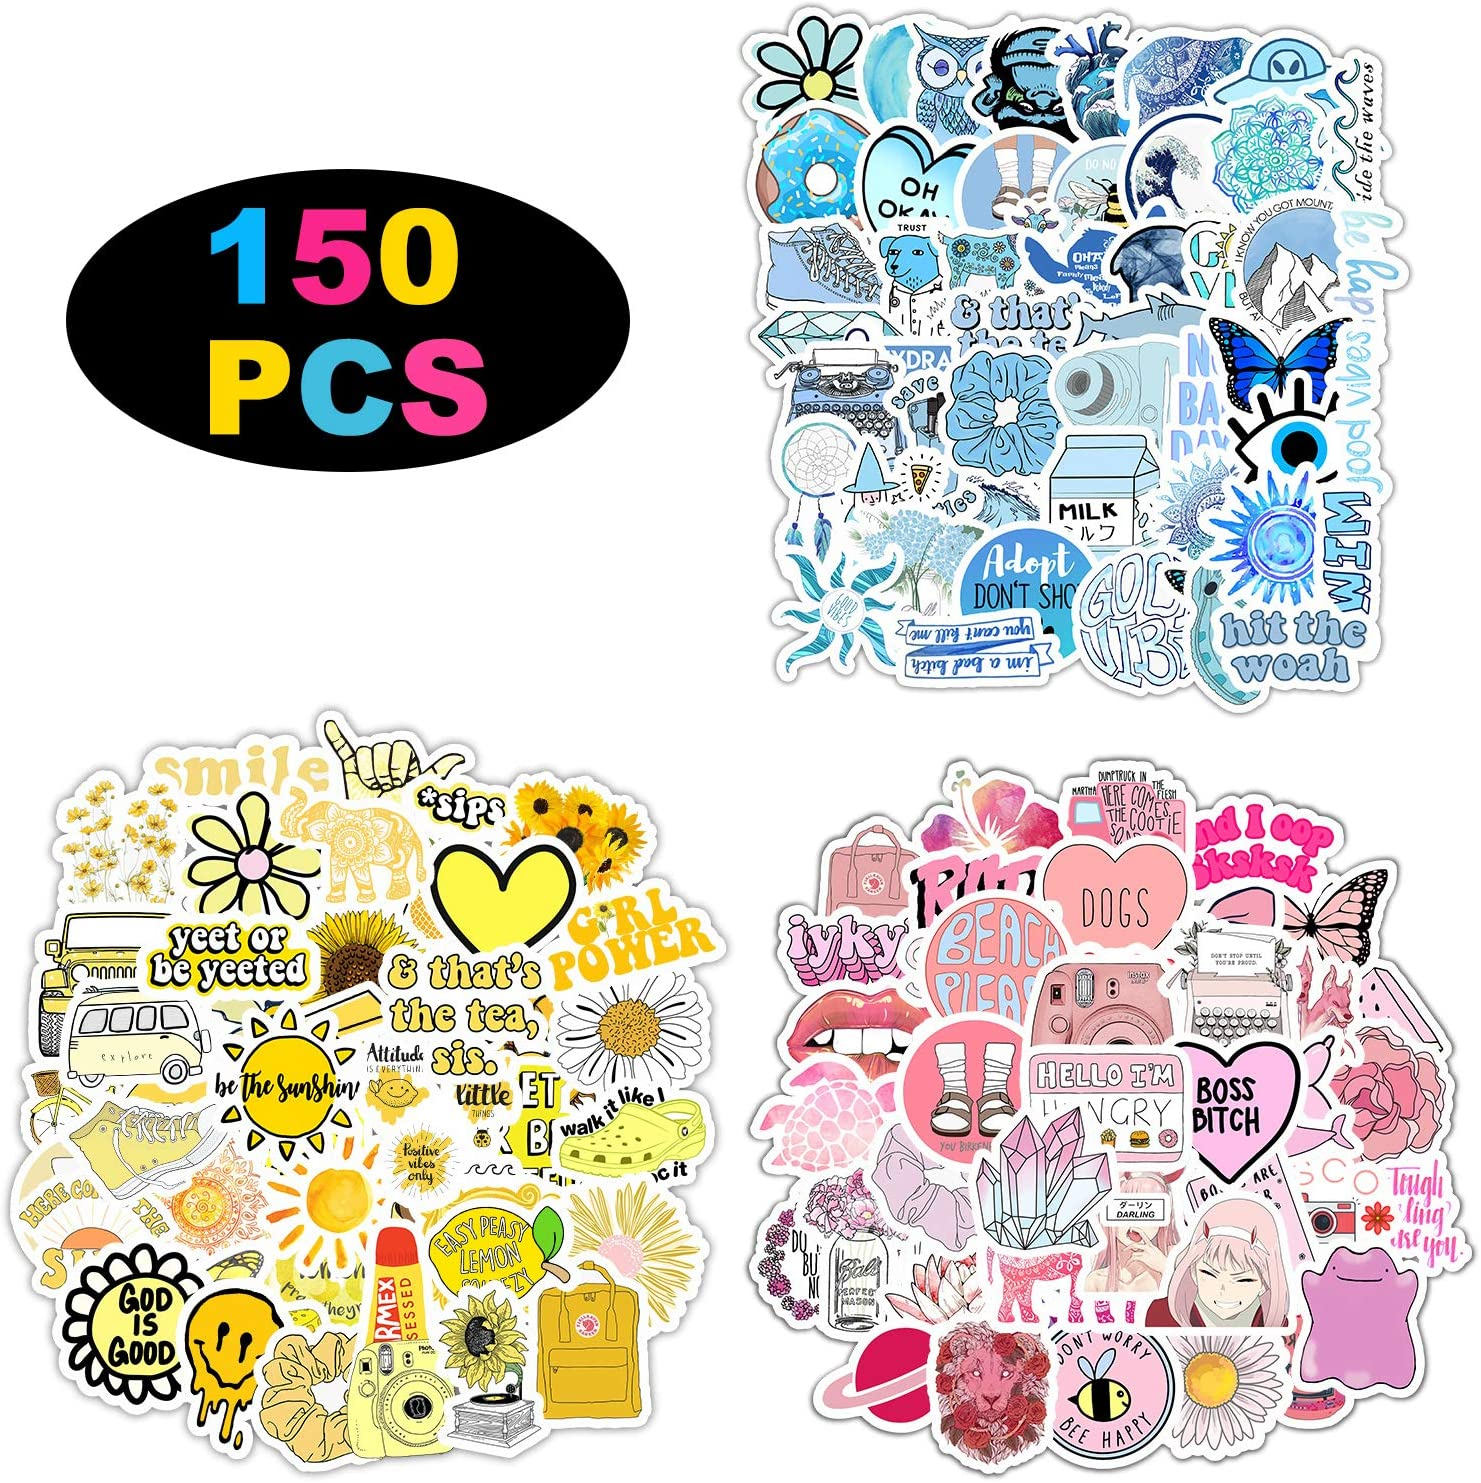 150 Stickers for Children Teens Girls Adults.Fresh and Girly Pink Sticker | Suitable for Water Bottles Laptops Phones Water Bottles Gift Boxes Waterproof Sunscreen Stickers Can Be Pasted Repeatedly